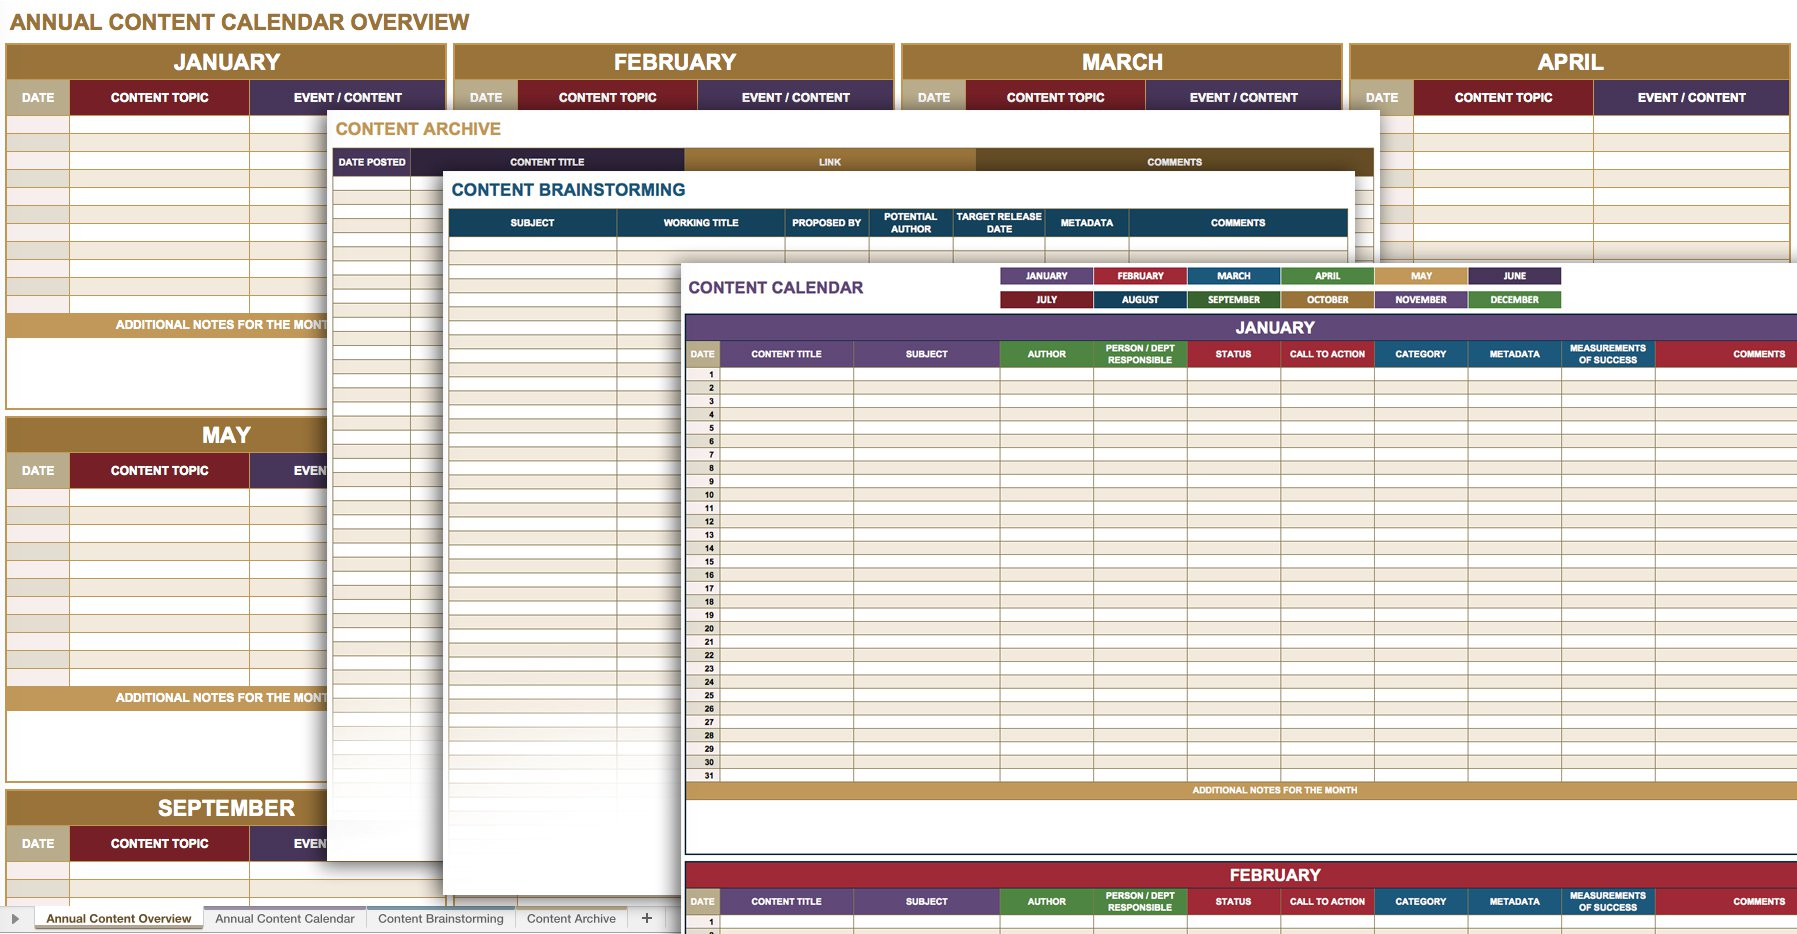 12 Free Social Media Templates | Smartsheet intended for Social Media Content Plan Excel Template Free